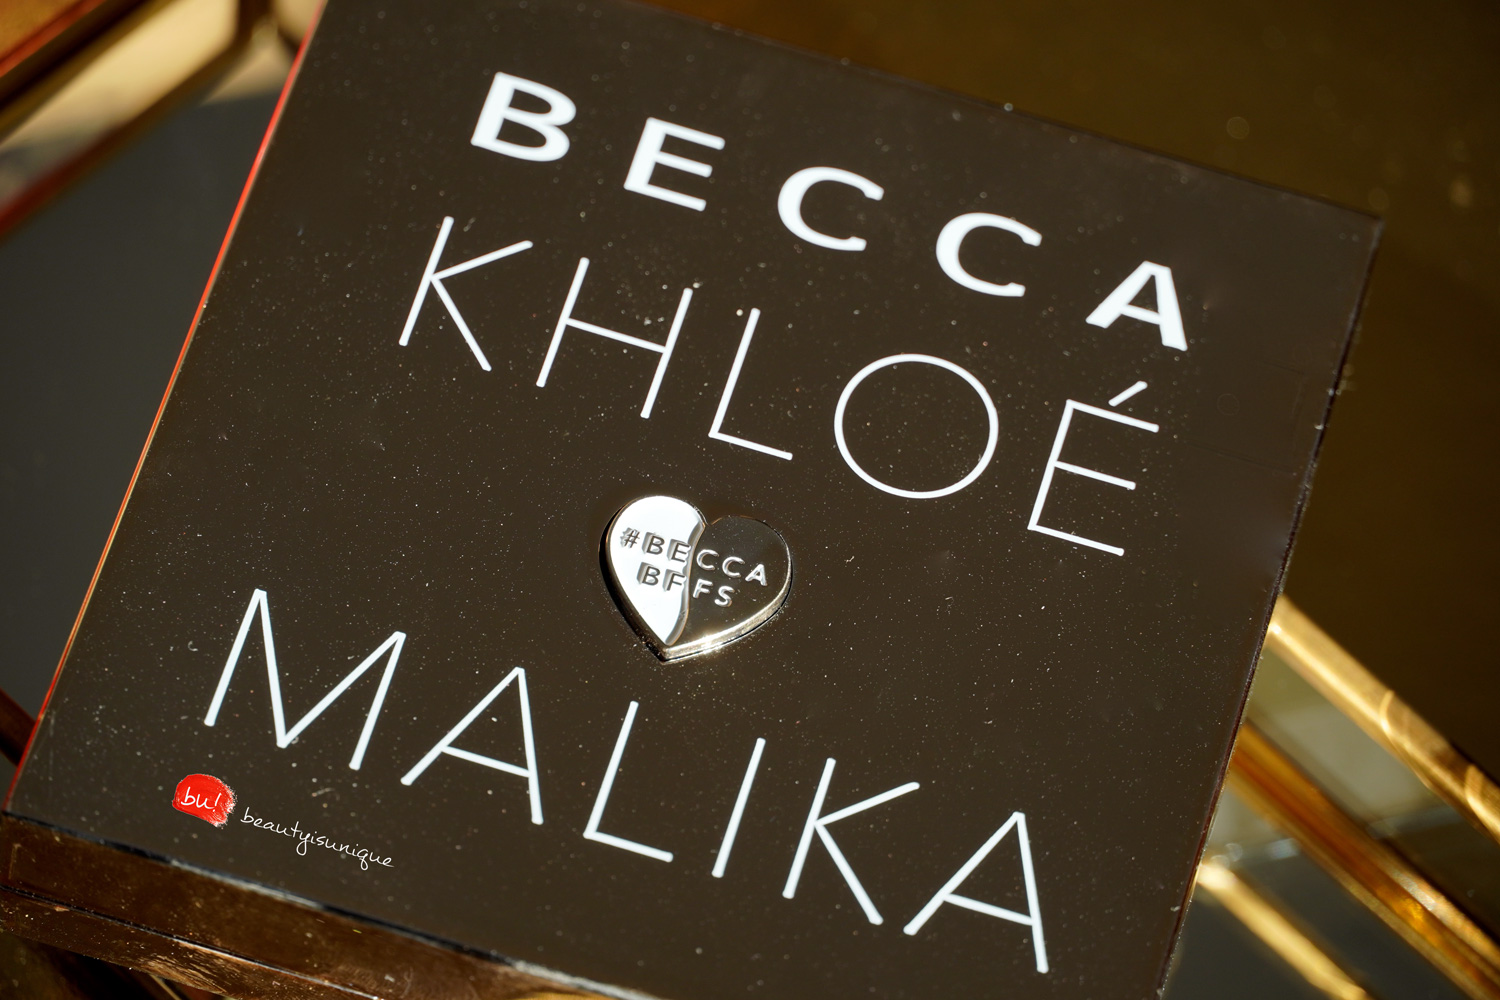 becca-khloe-malika-made-with-love-by-khloe